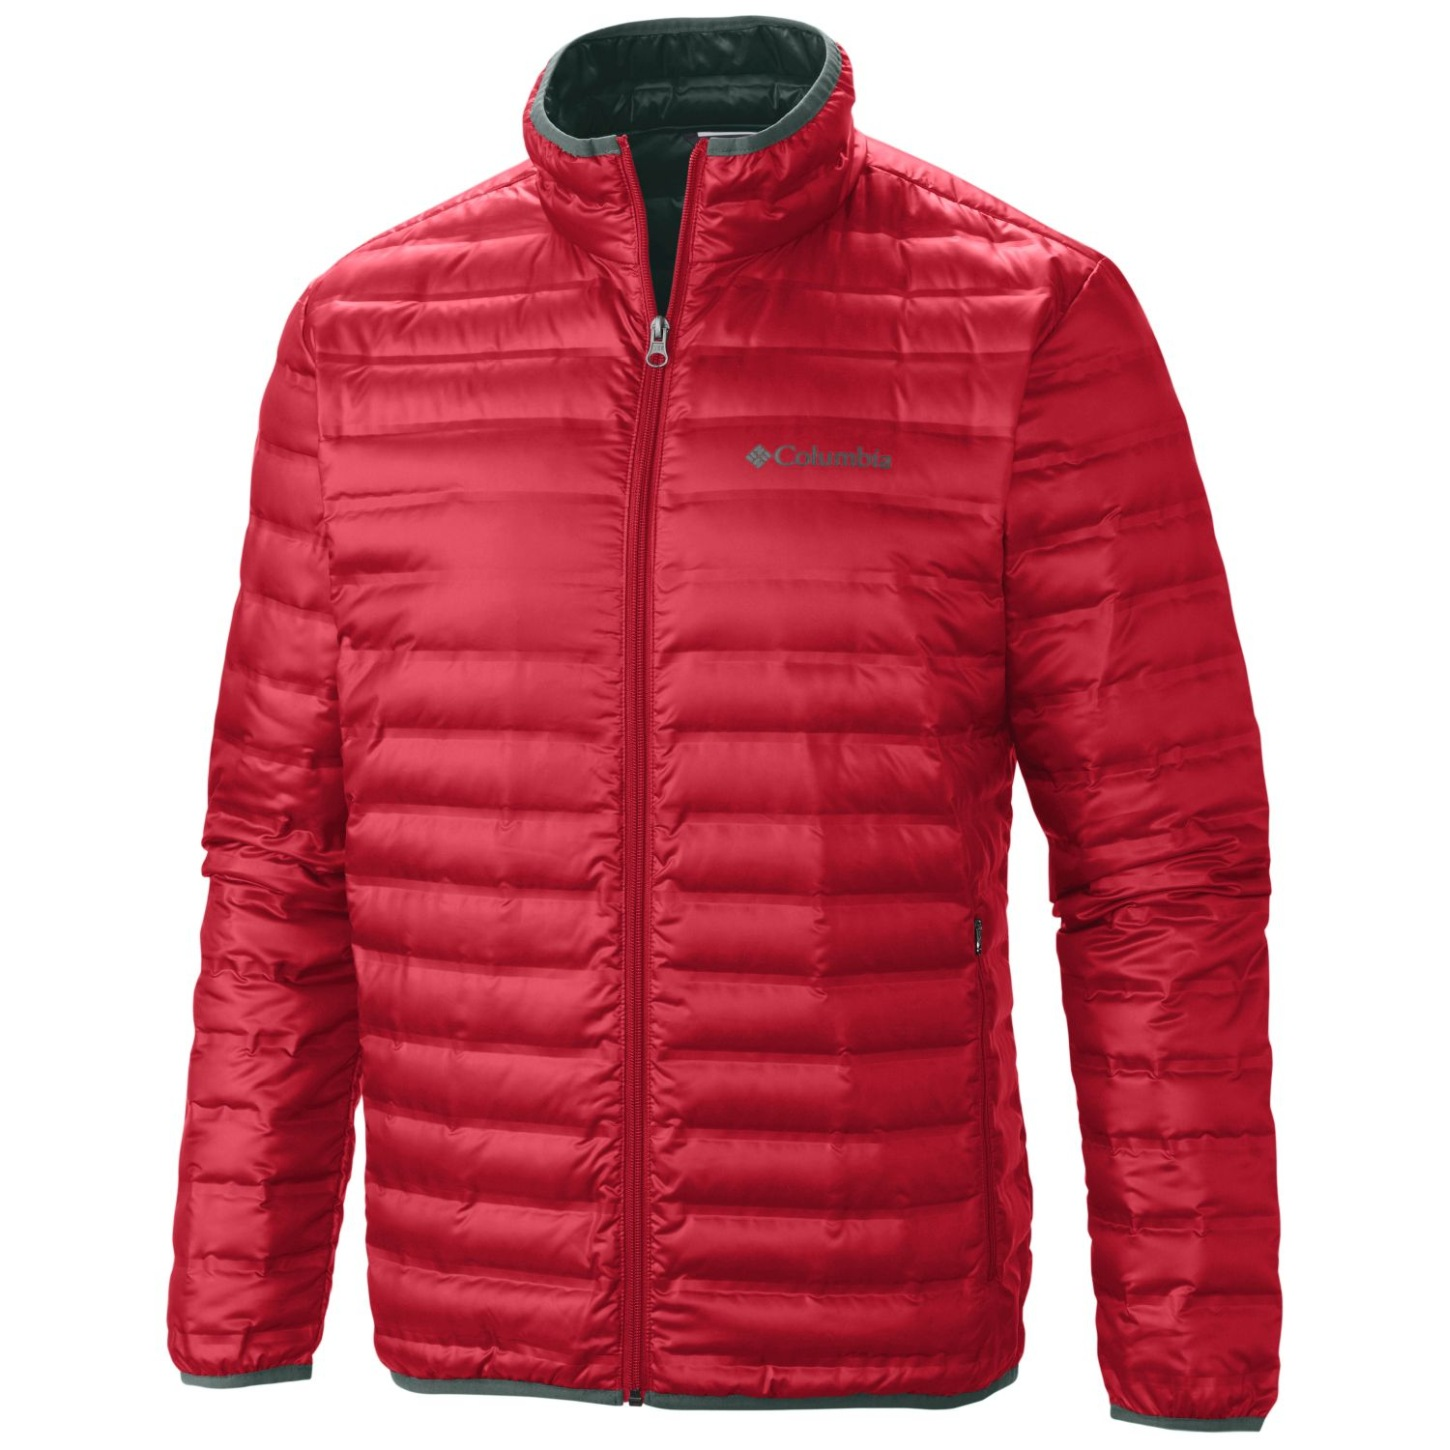 Columbia Flash Forward Daunenjacke für Herren Mountain Red-30